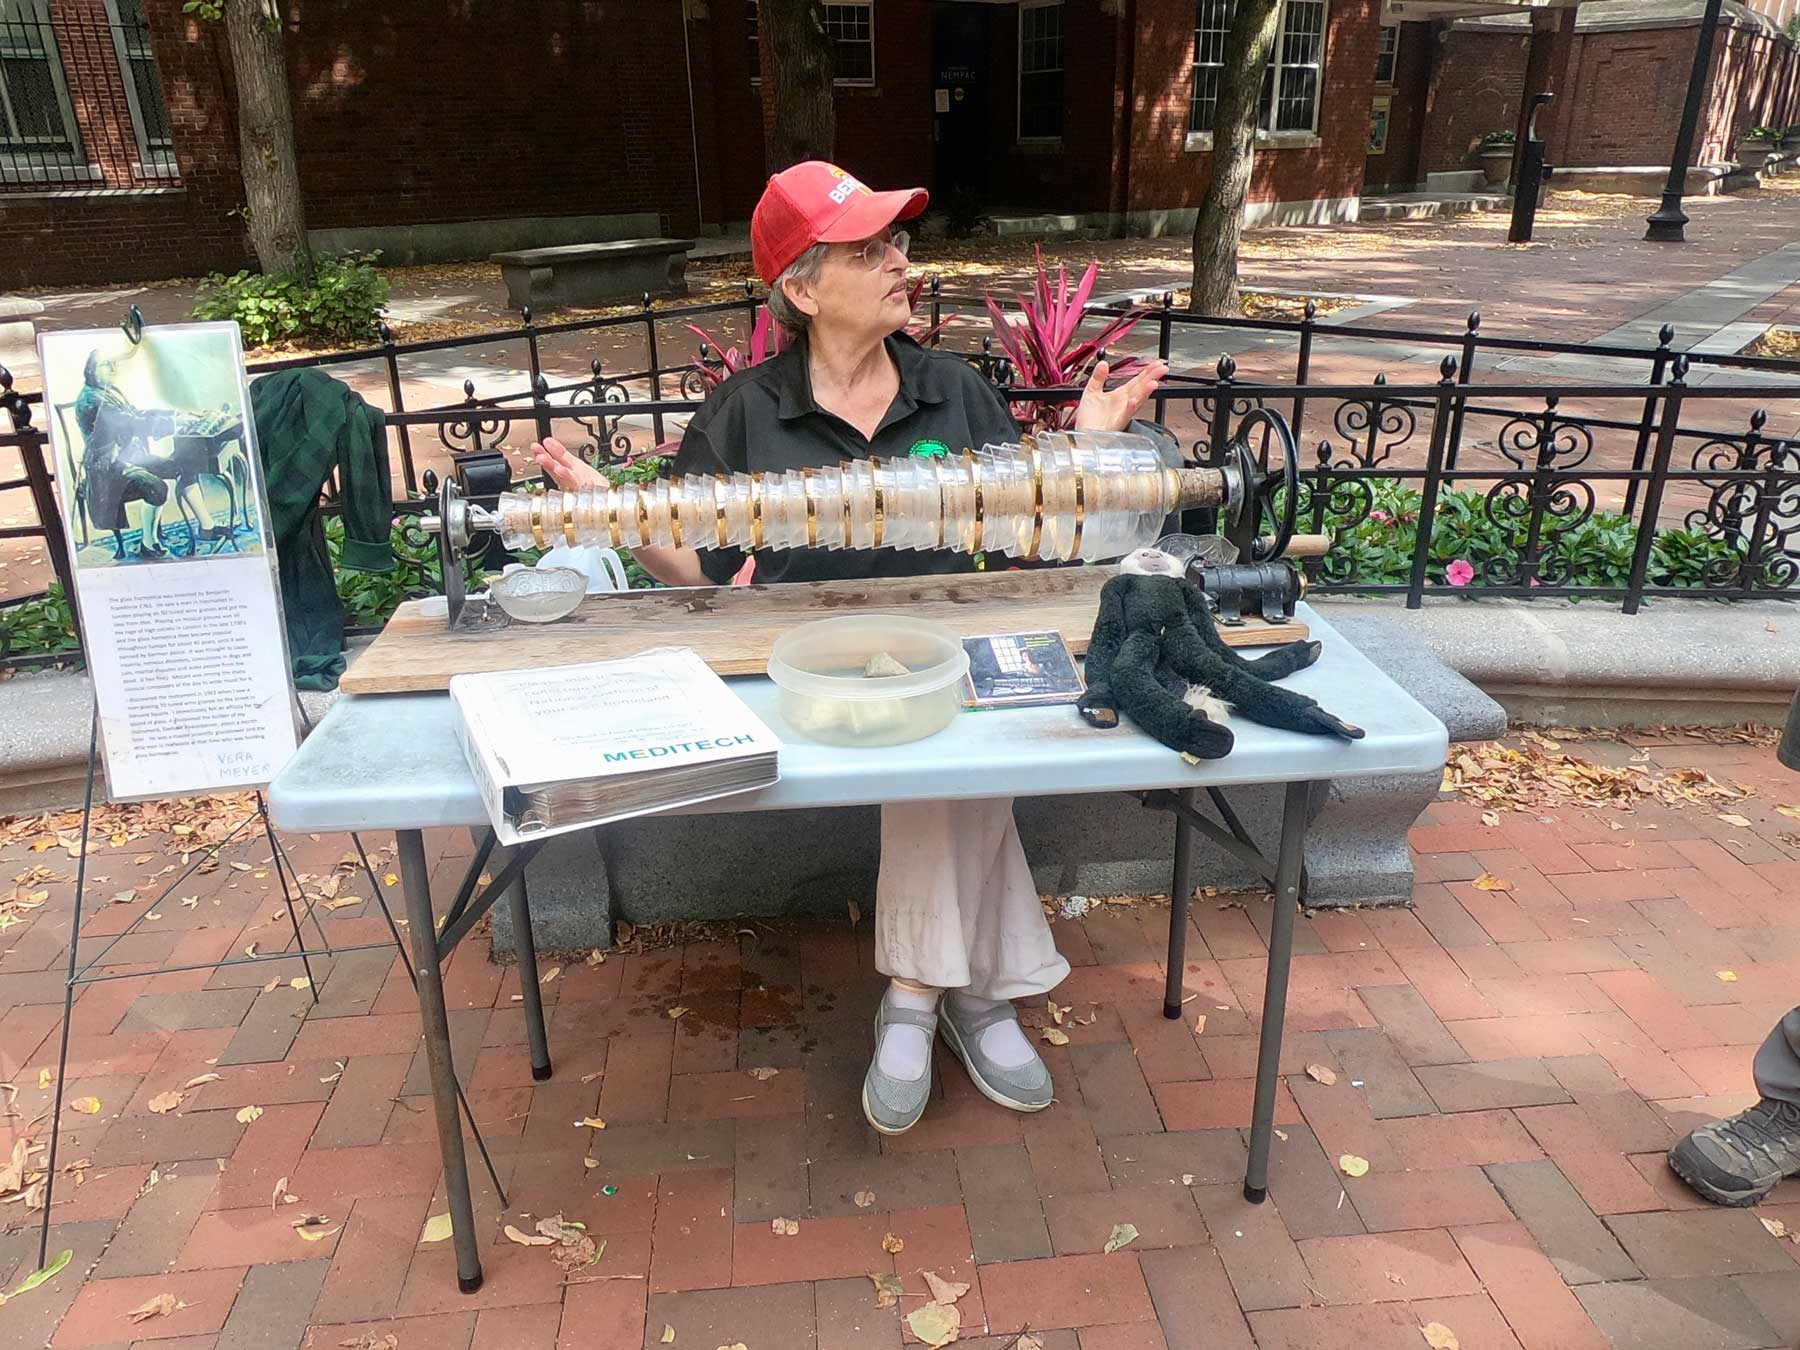 Vera Meyer playing armonica at the Paul Revere Mall on Freedom Trail in Boston, Massachusetts